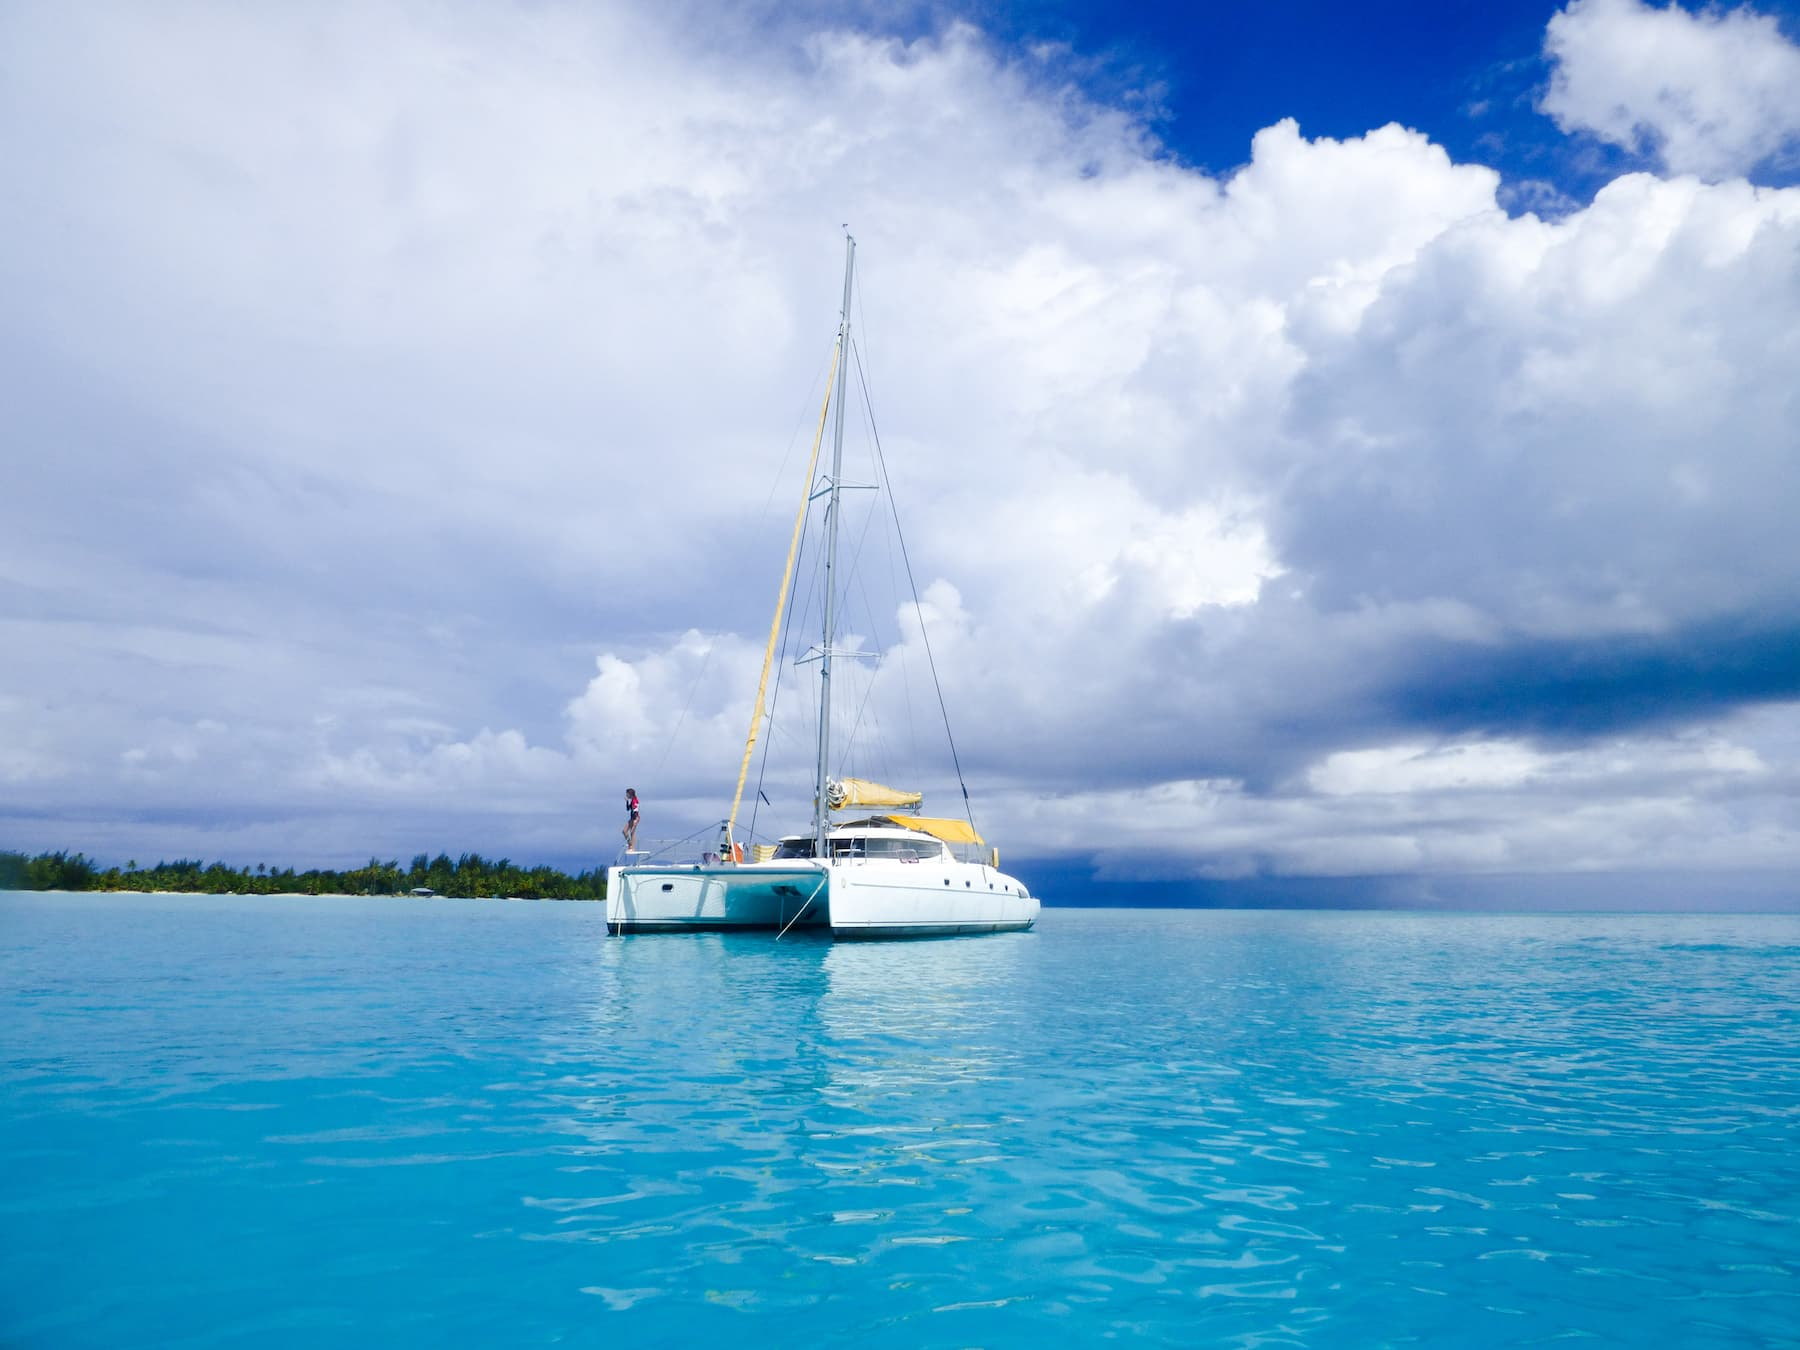 https://tahititourisme.es/wp-content/uploads/2017/08/bateau-tlc-modif-11-copie.jpg